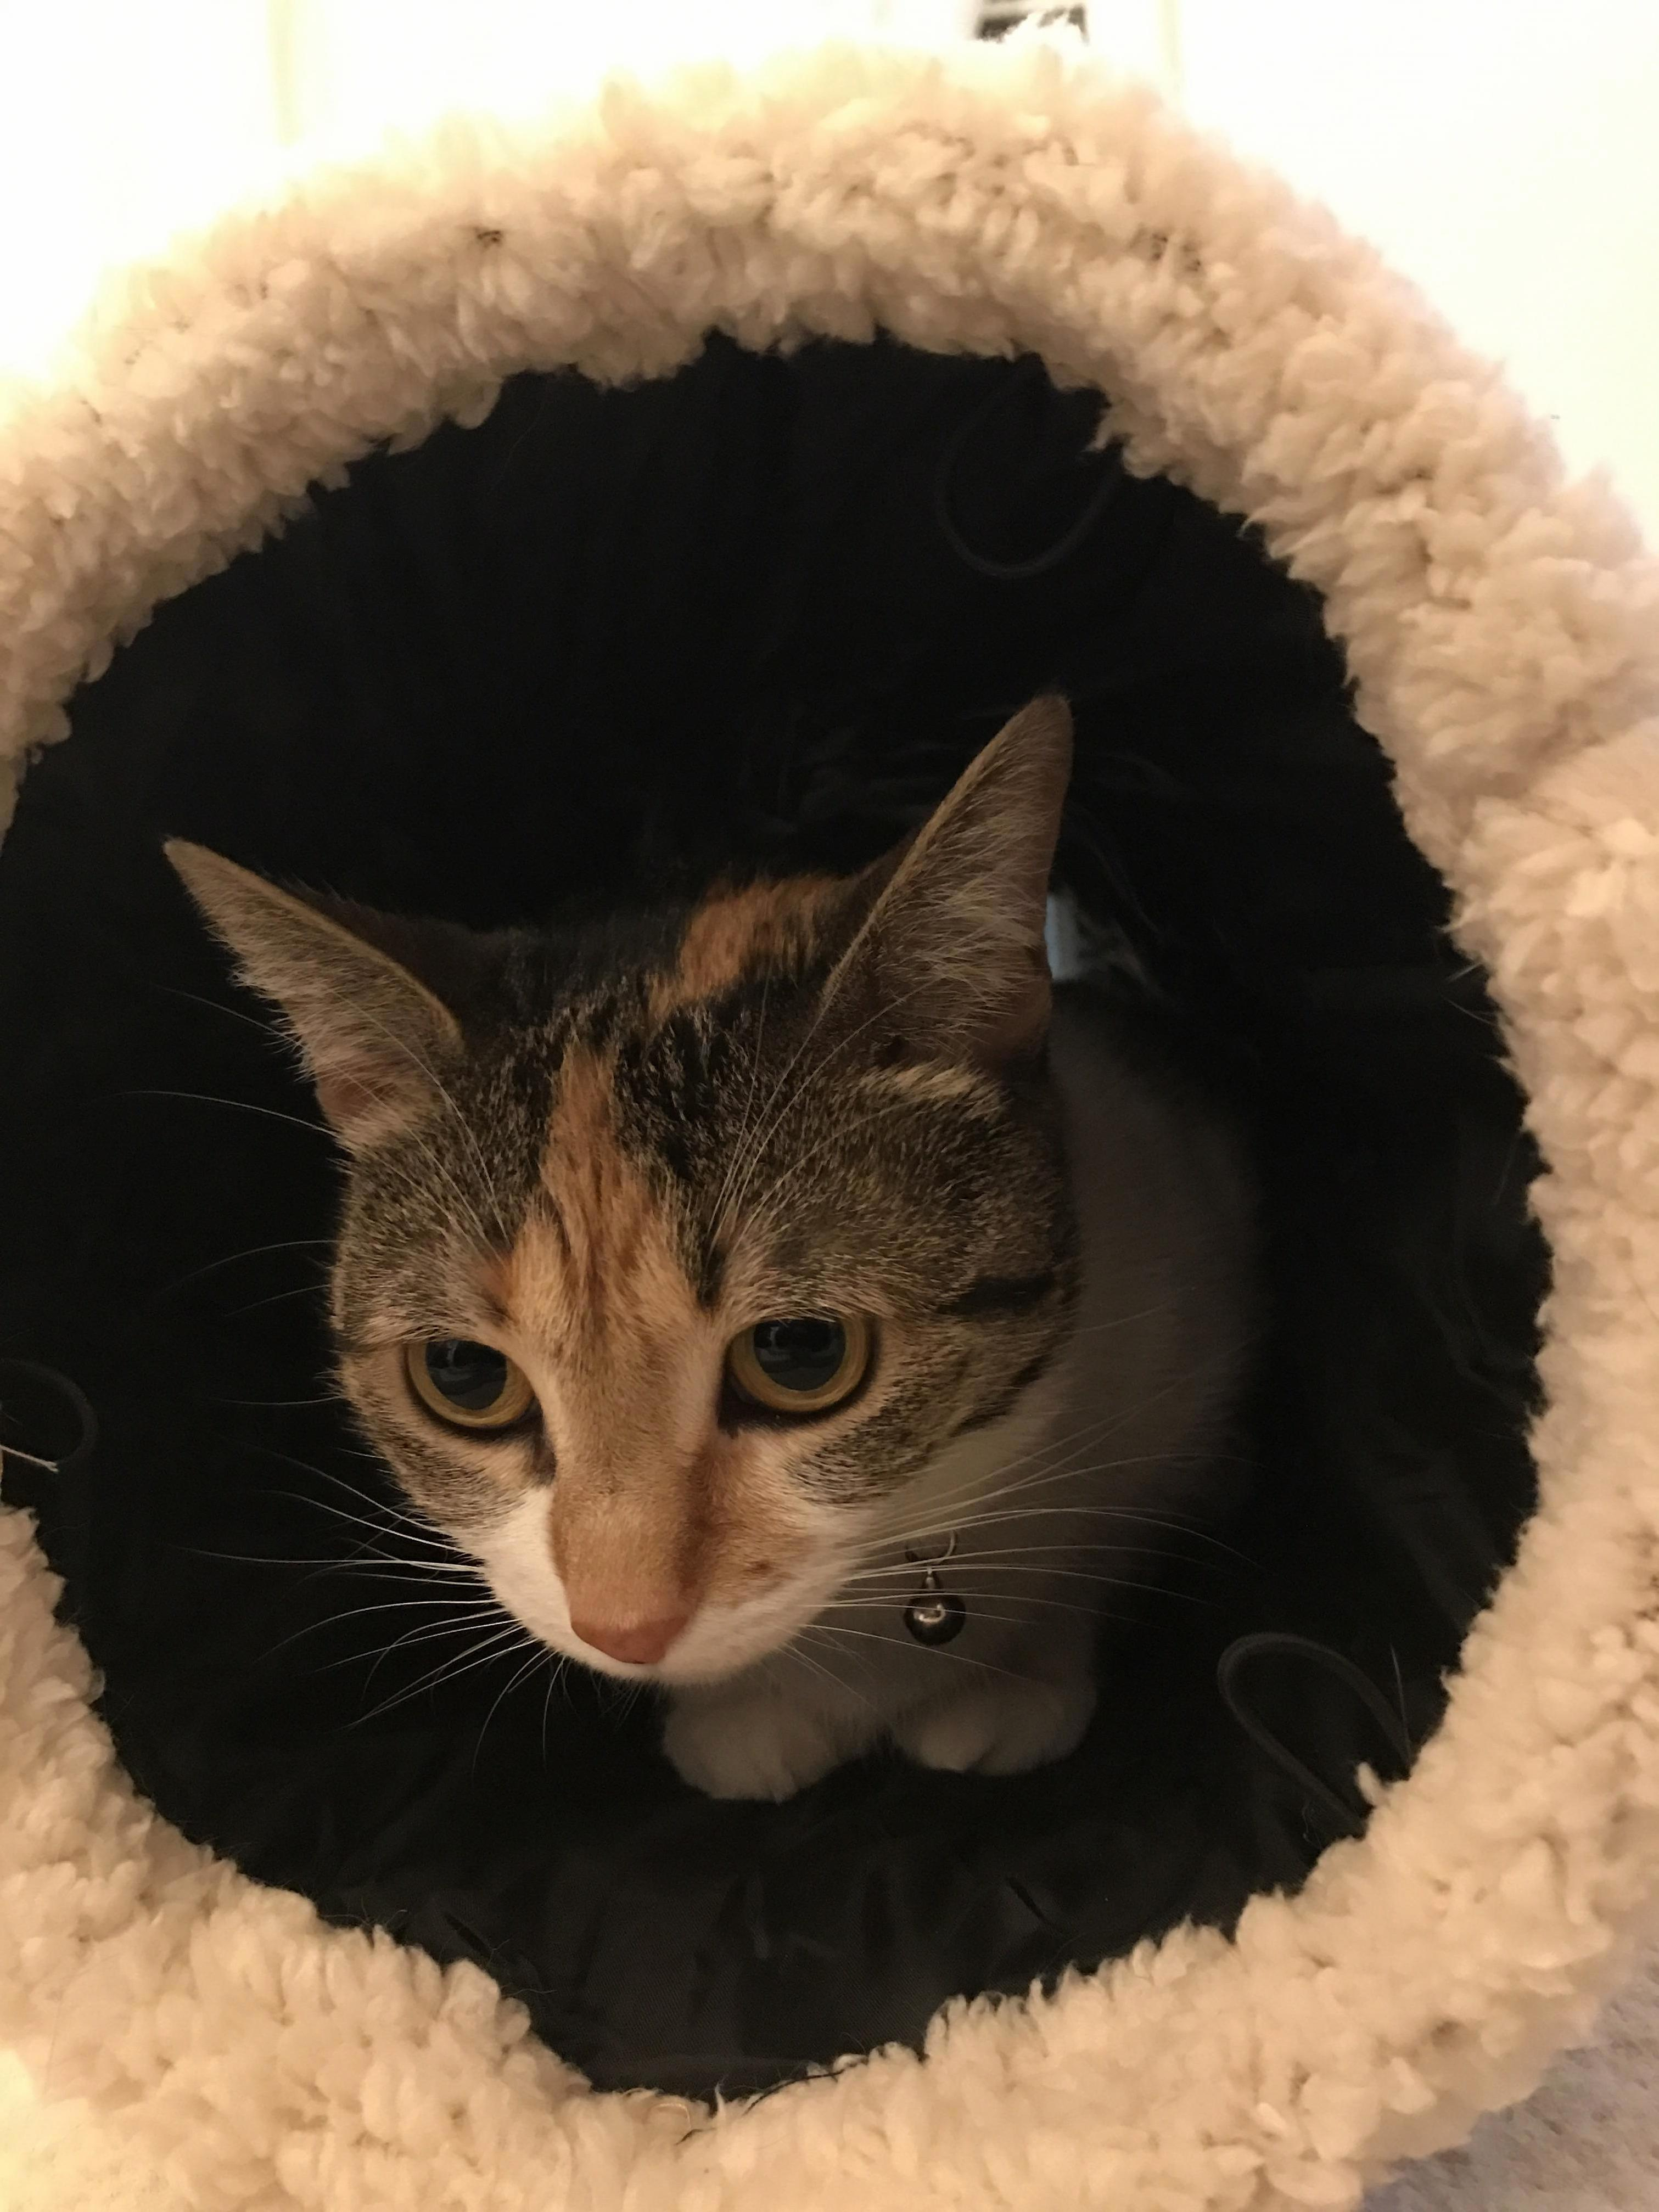 She loves this tunnel.